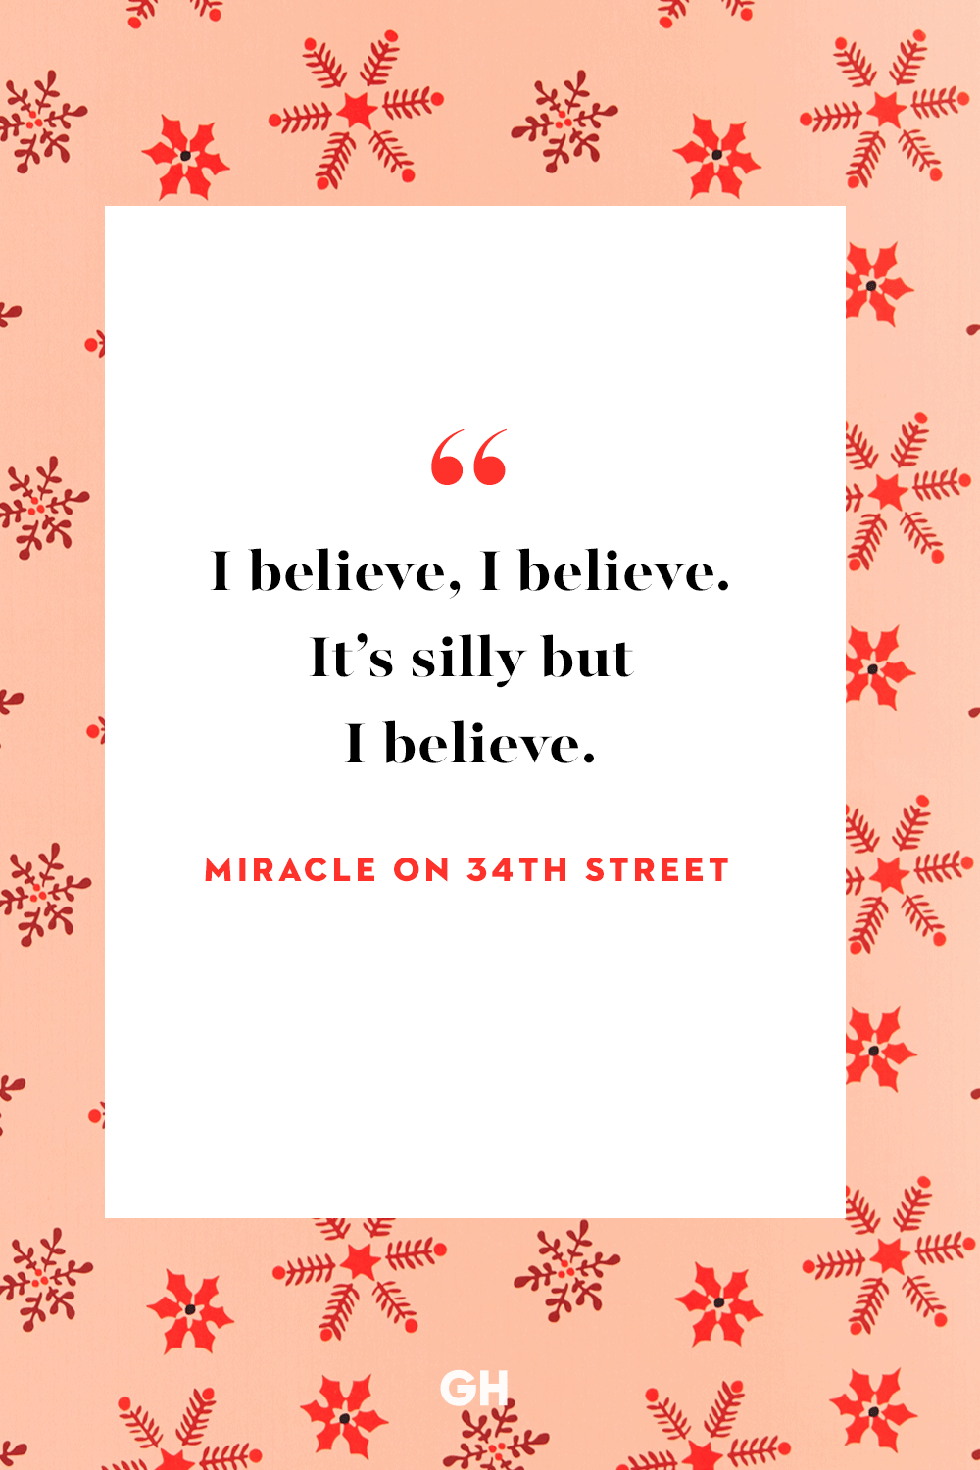 40 Iconic Christmas Movie Quotes From The Best Holiday Films Muppet Christmas Carol Christmas Movie Quotes Miracle On 34th Street